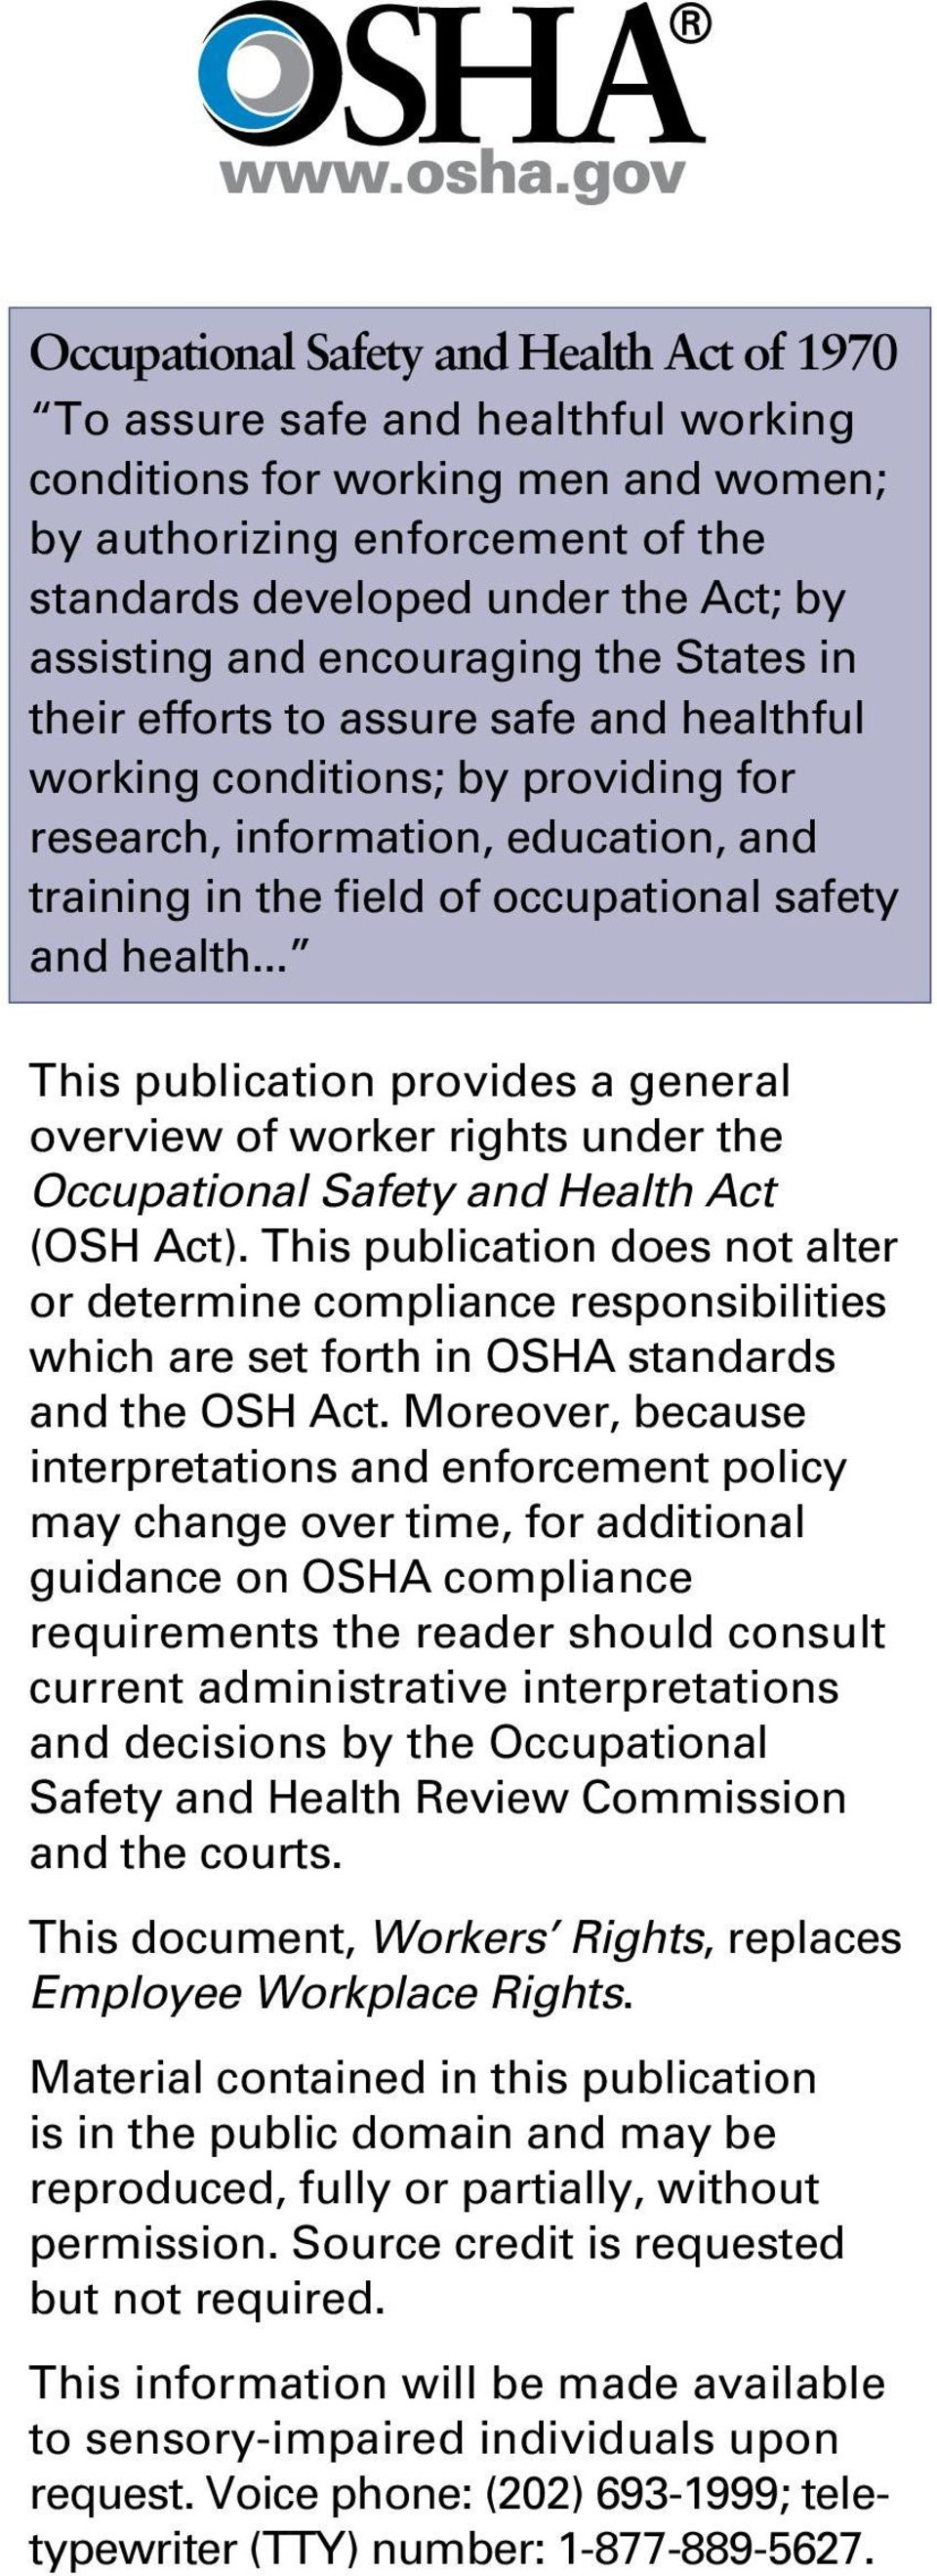 .. This publicatio provides a geeral overview of worker rights uder the Occupatioal Safety ad Health Act (OSH Act).